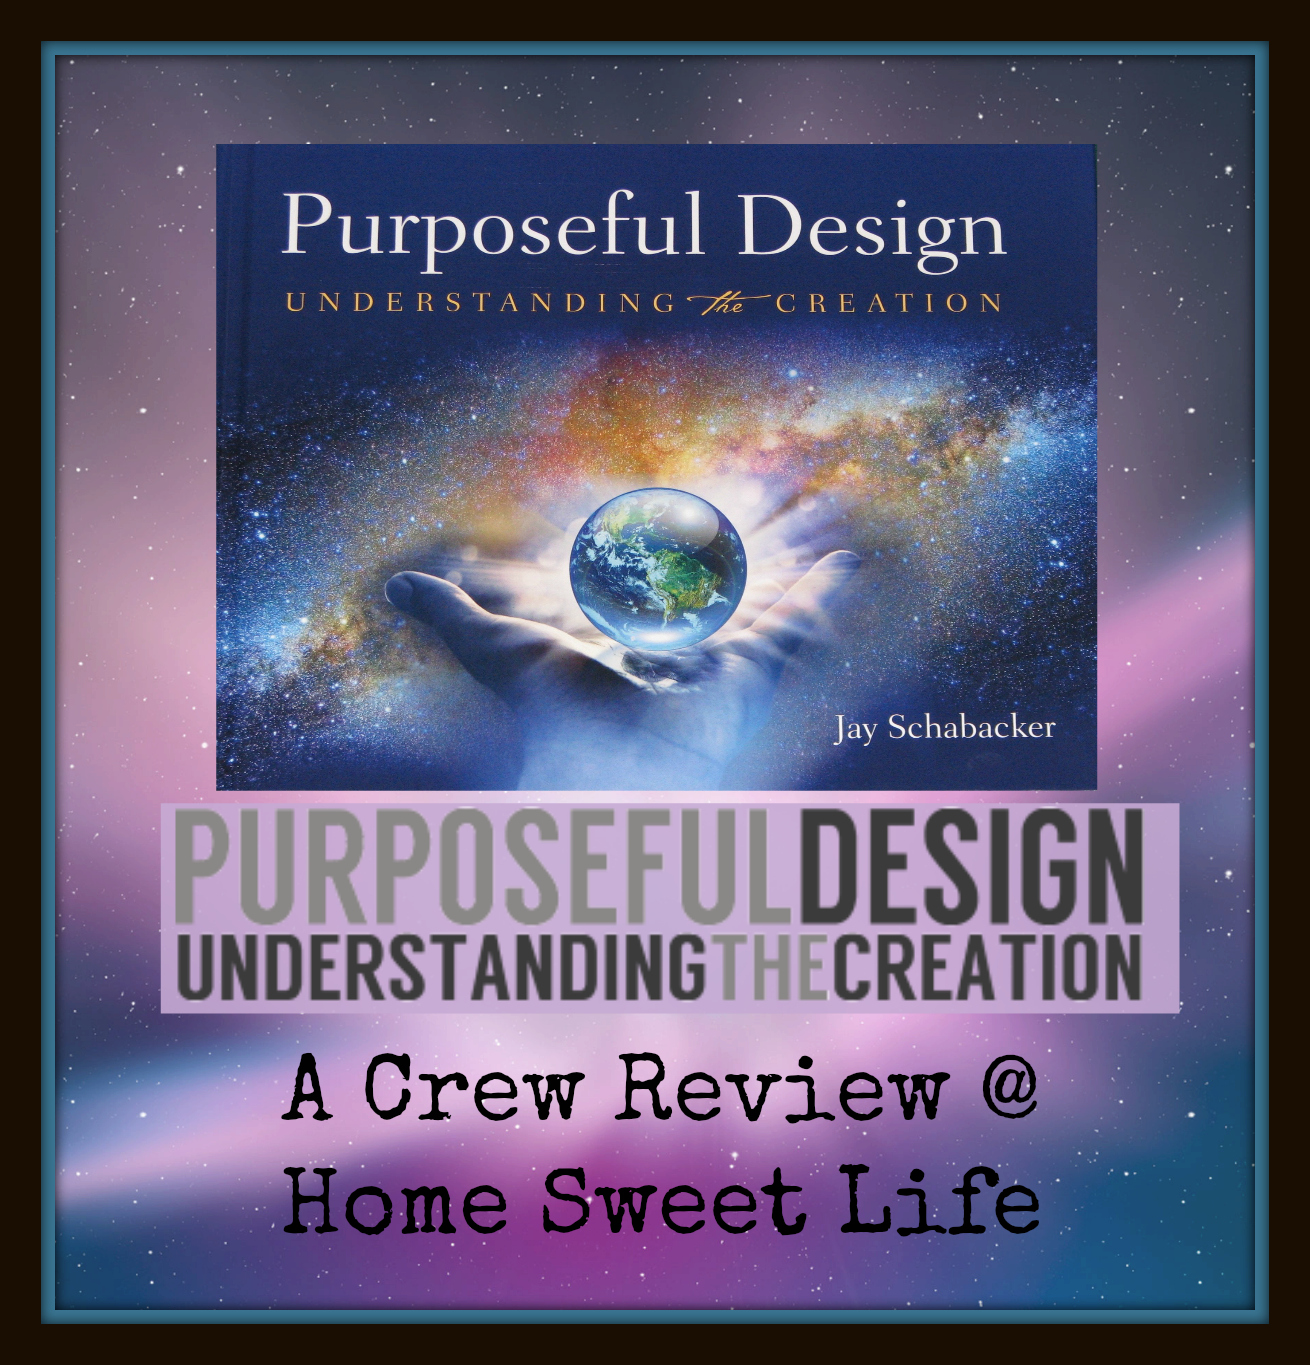 Home Sweet Life: Purposeful Design